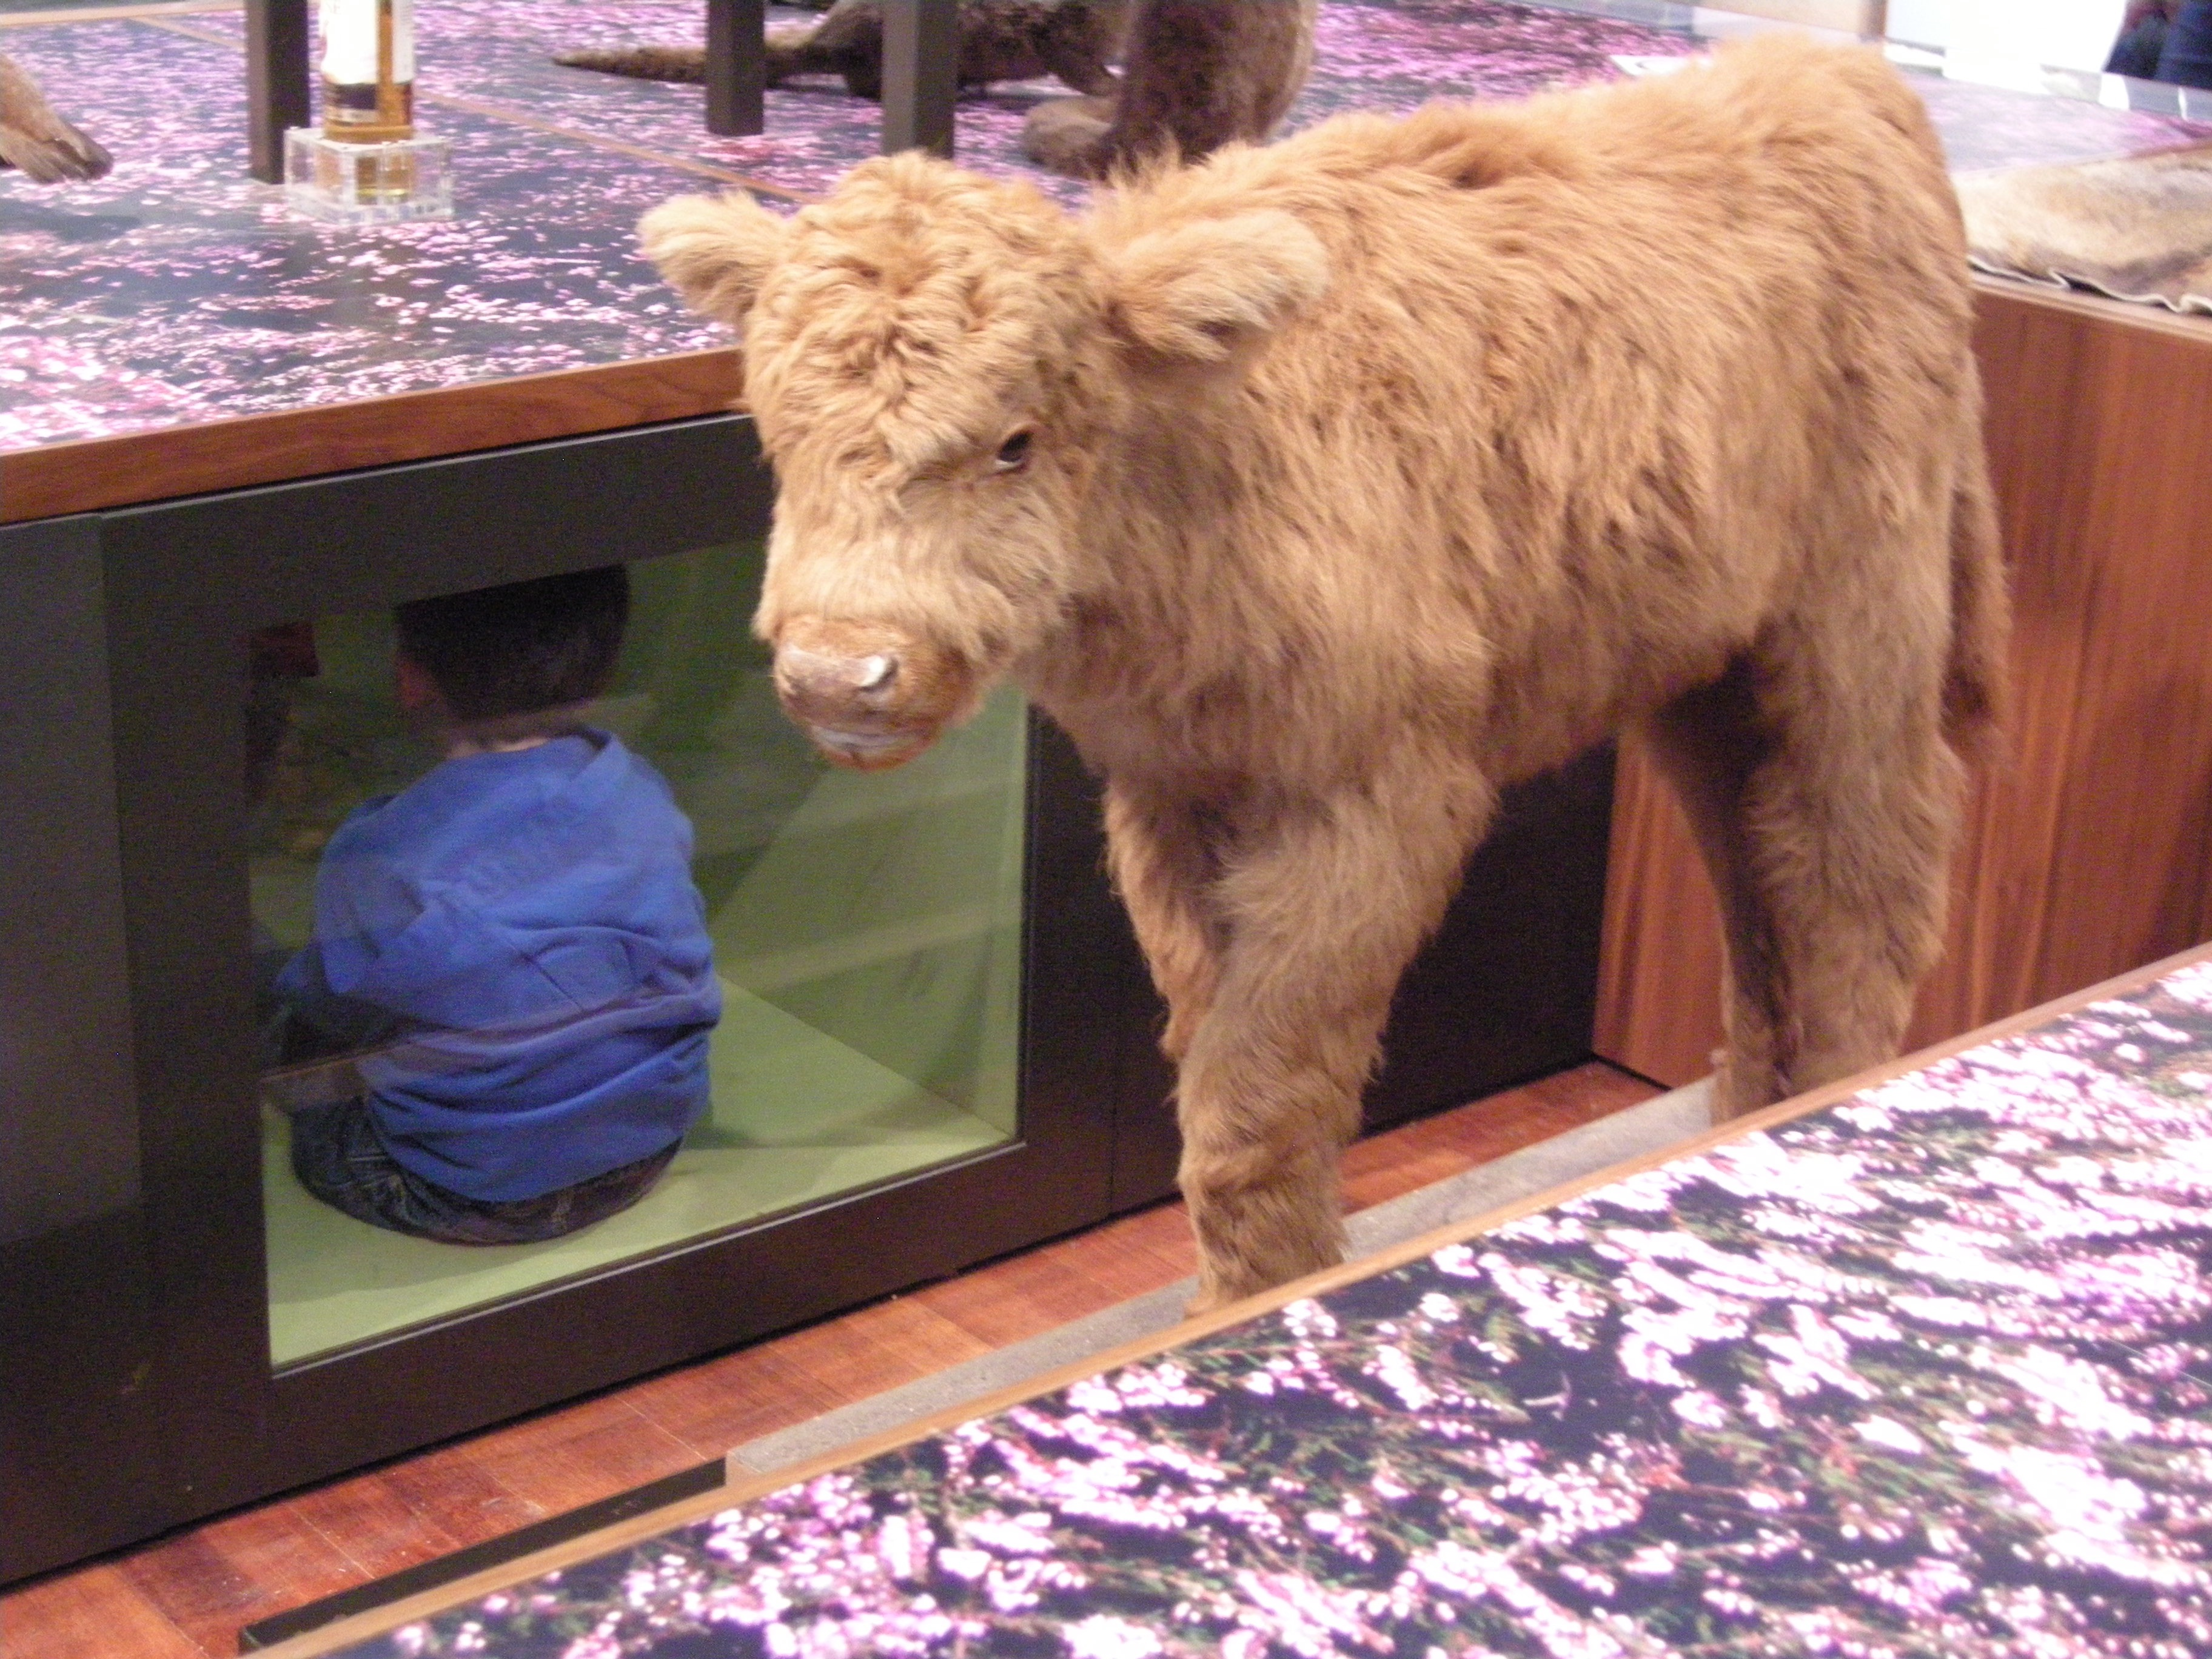 Seeing the exhibits from a different angle